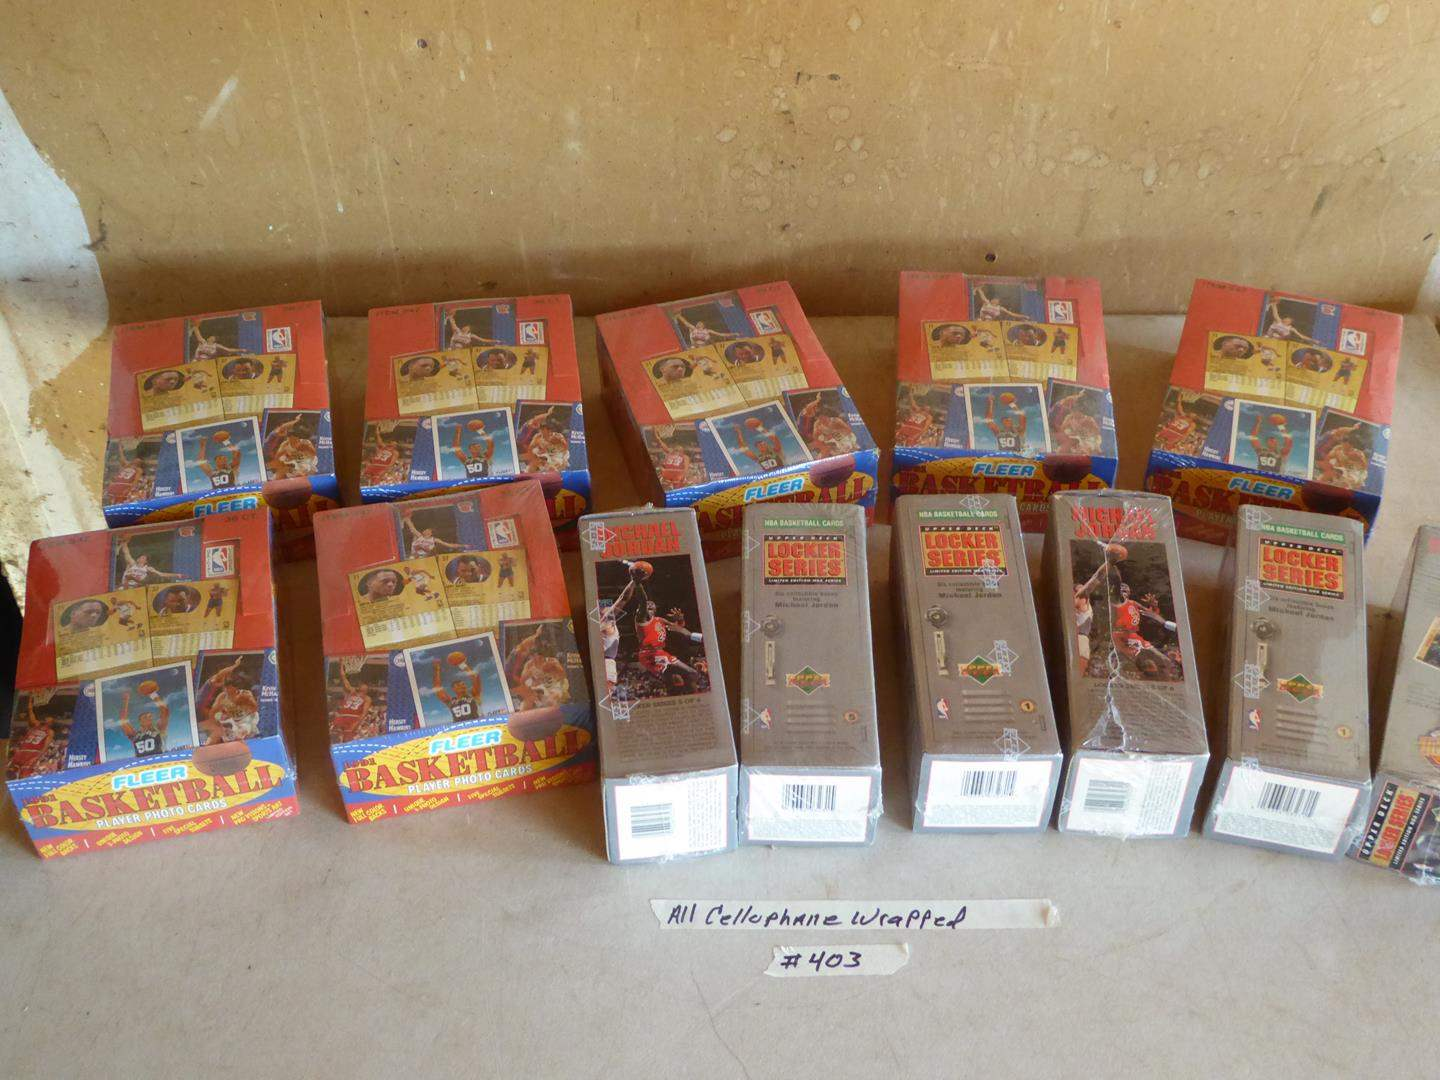 Lot # 403 - 13 Boxes Cellophane Wrapped Basketball Cards (main image)